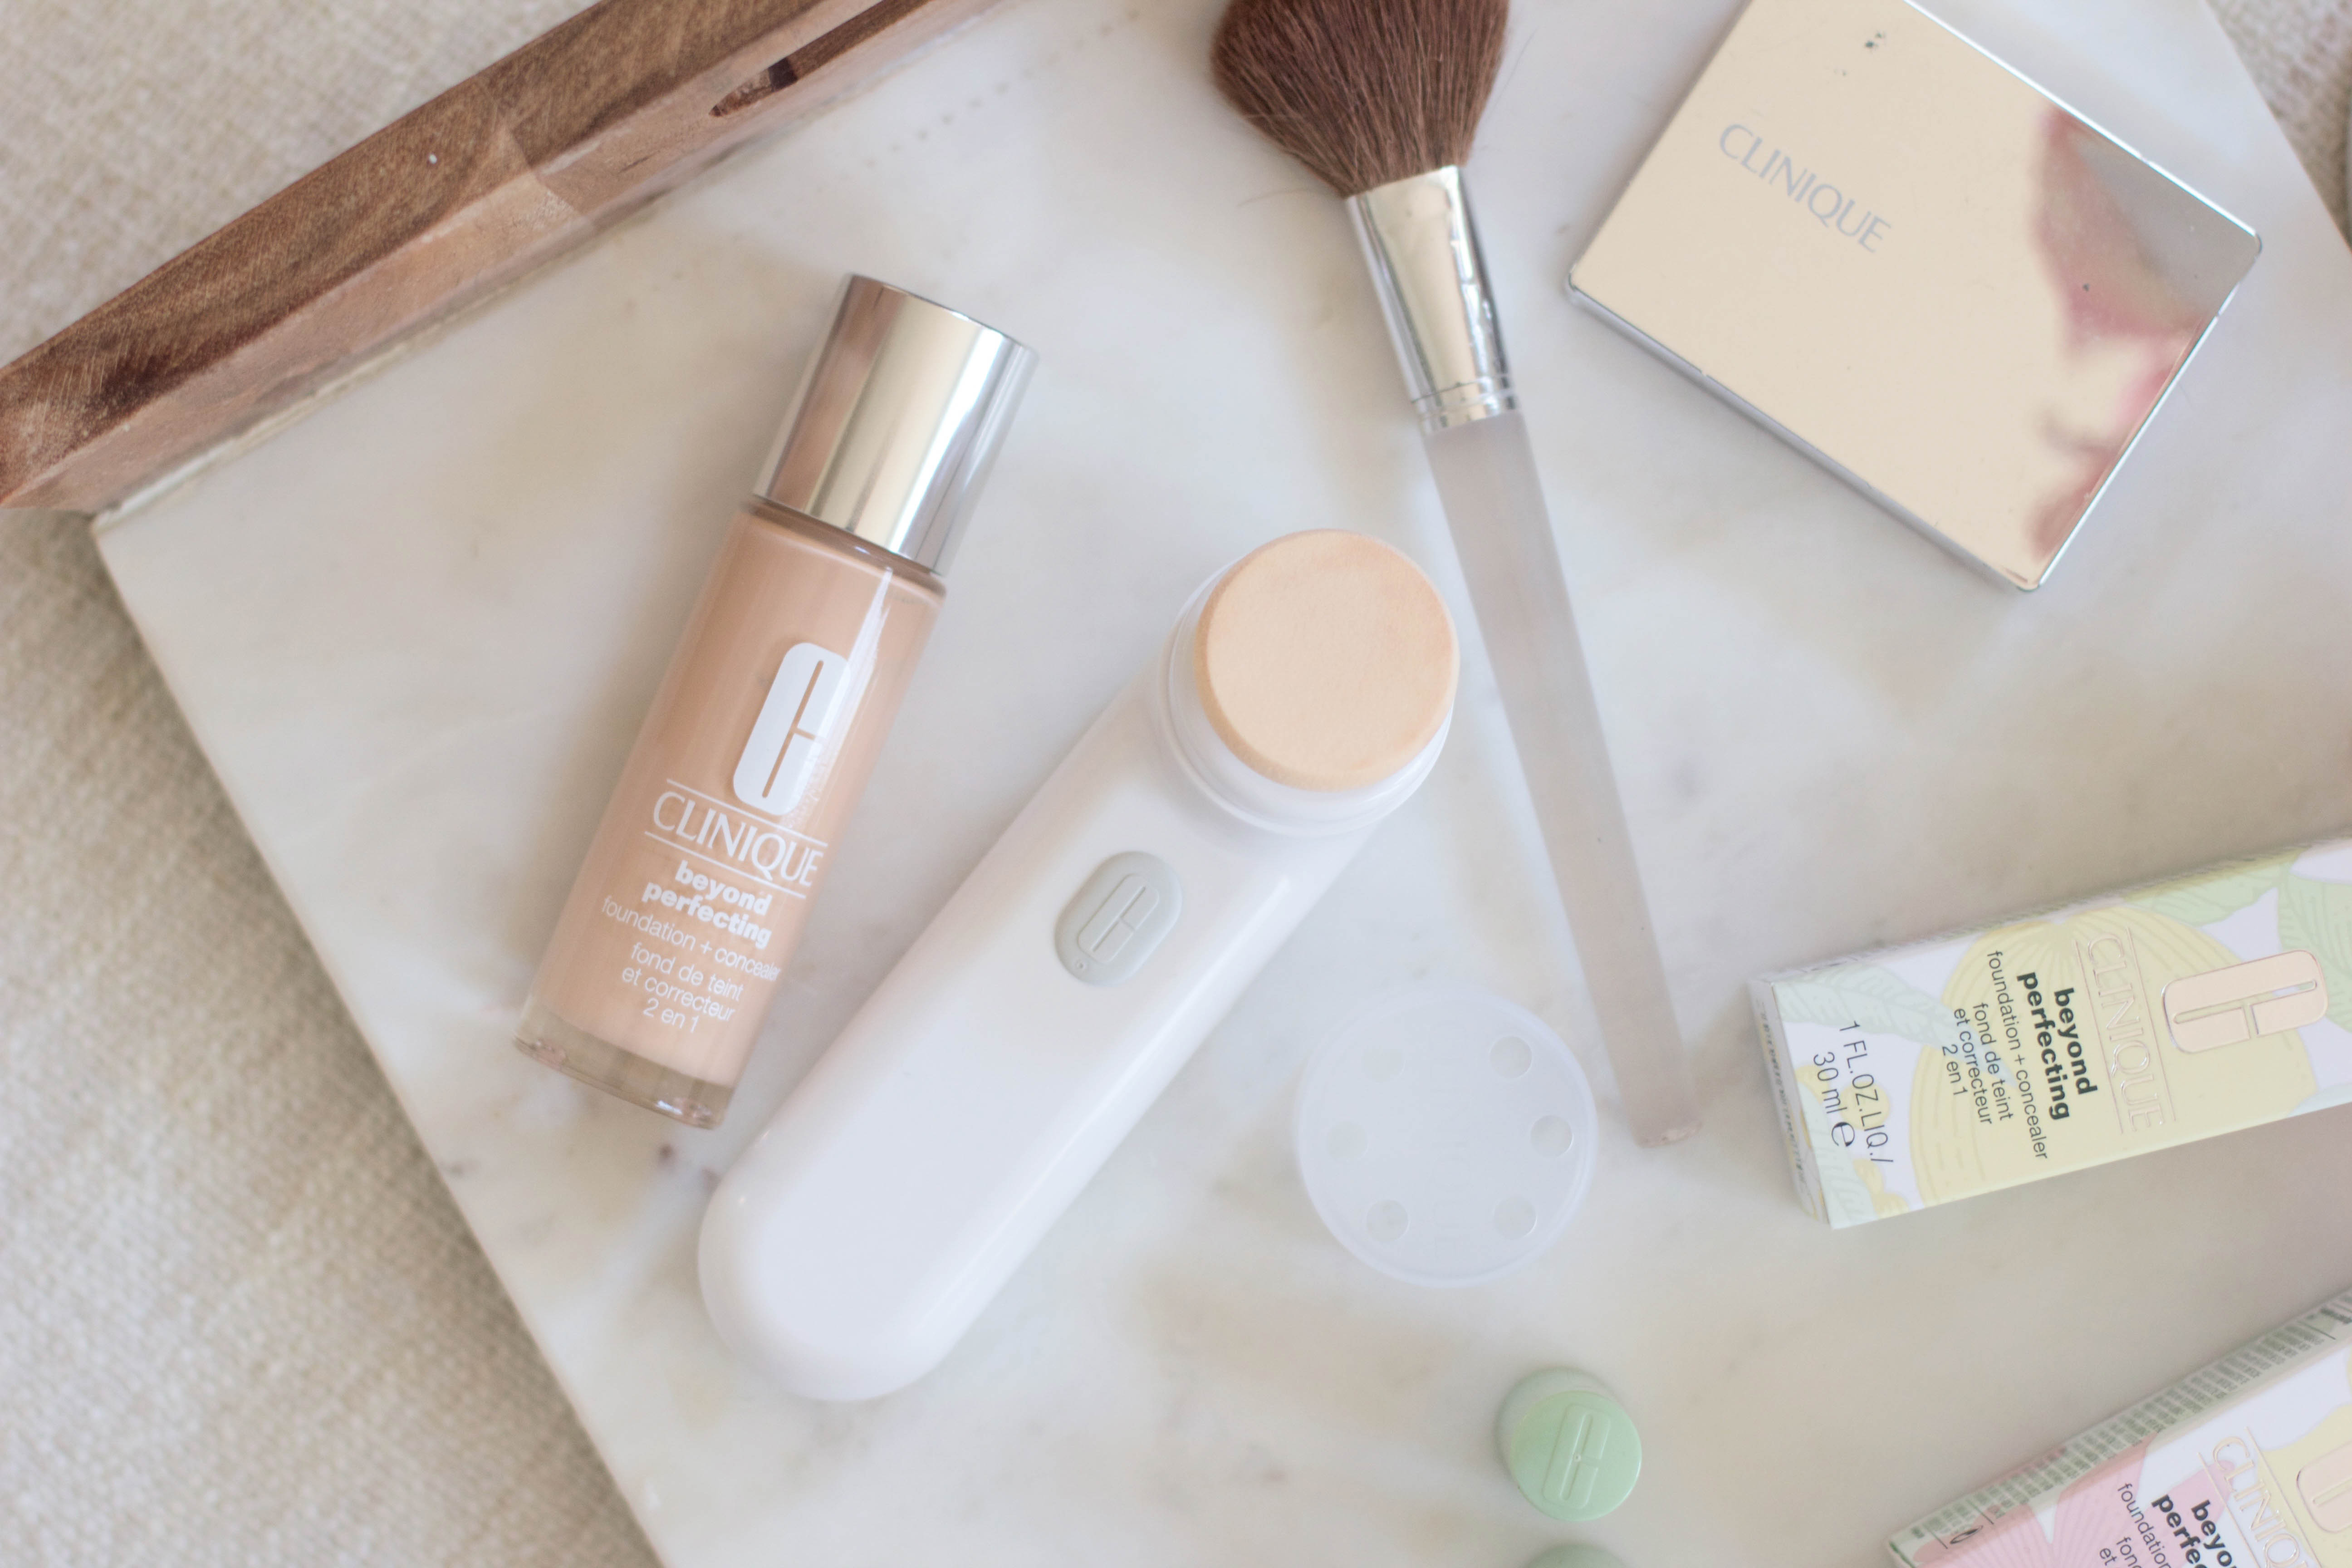 Beauty // Clinique Sonic Airbrushed Liquid Foundation Applicator - Lauren McBride